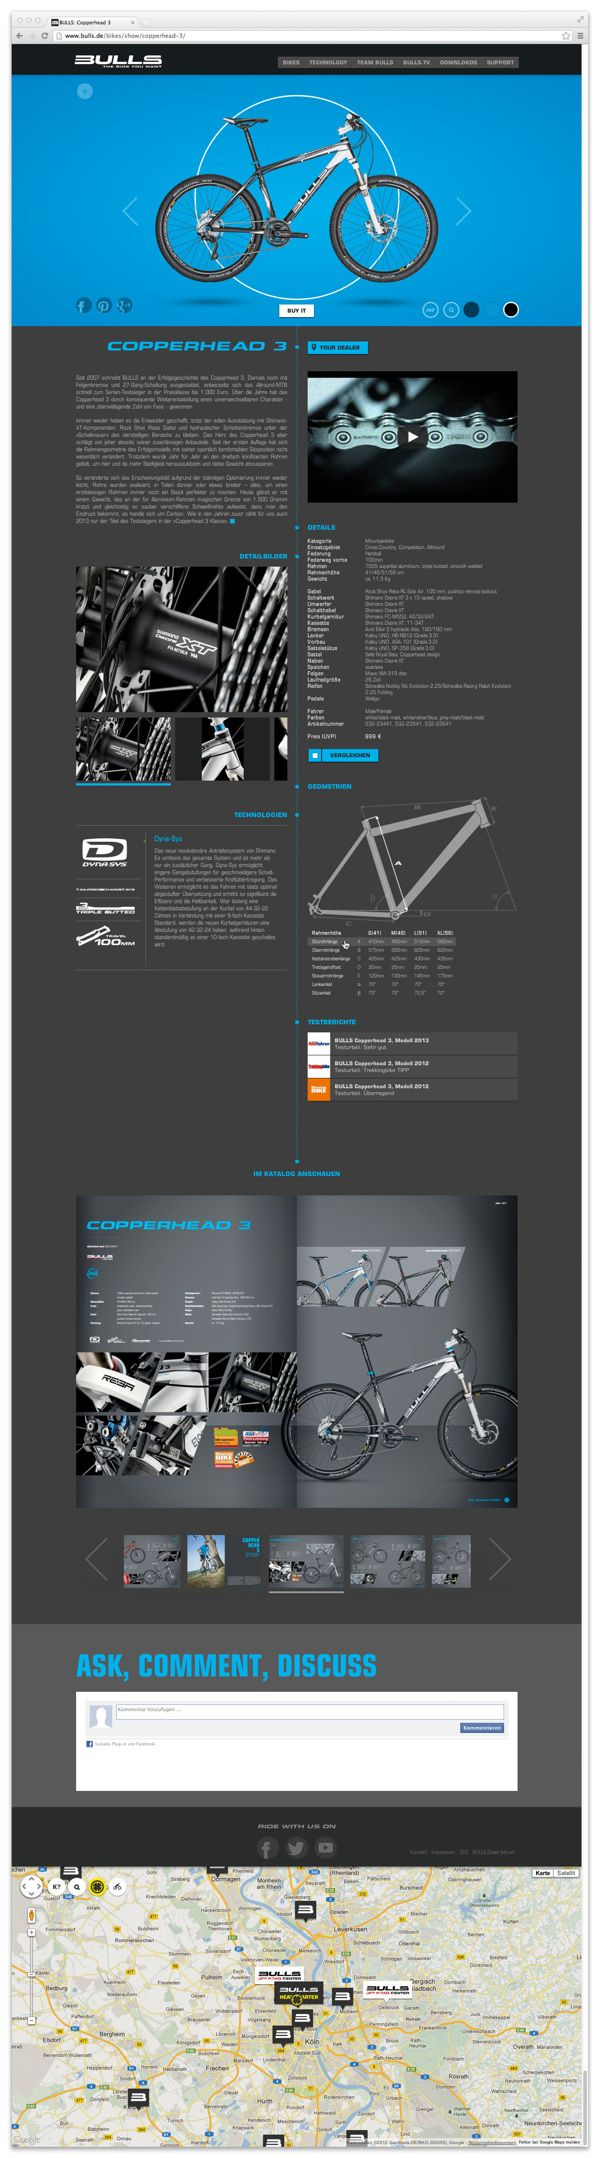 BULLS.DE on Web Design Served